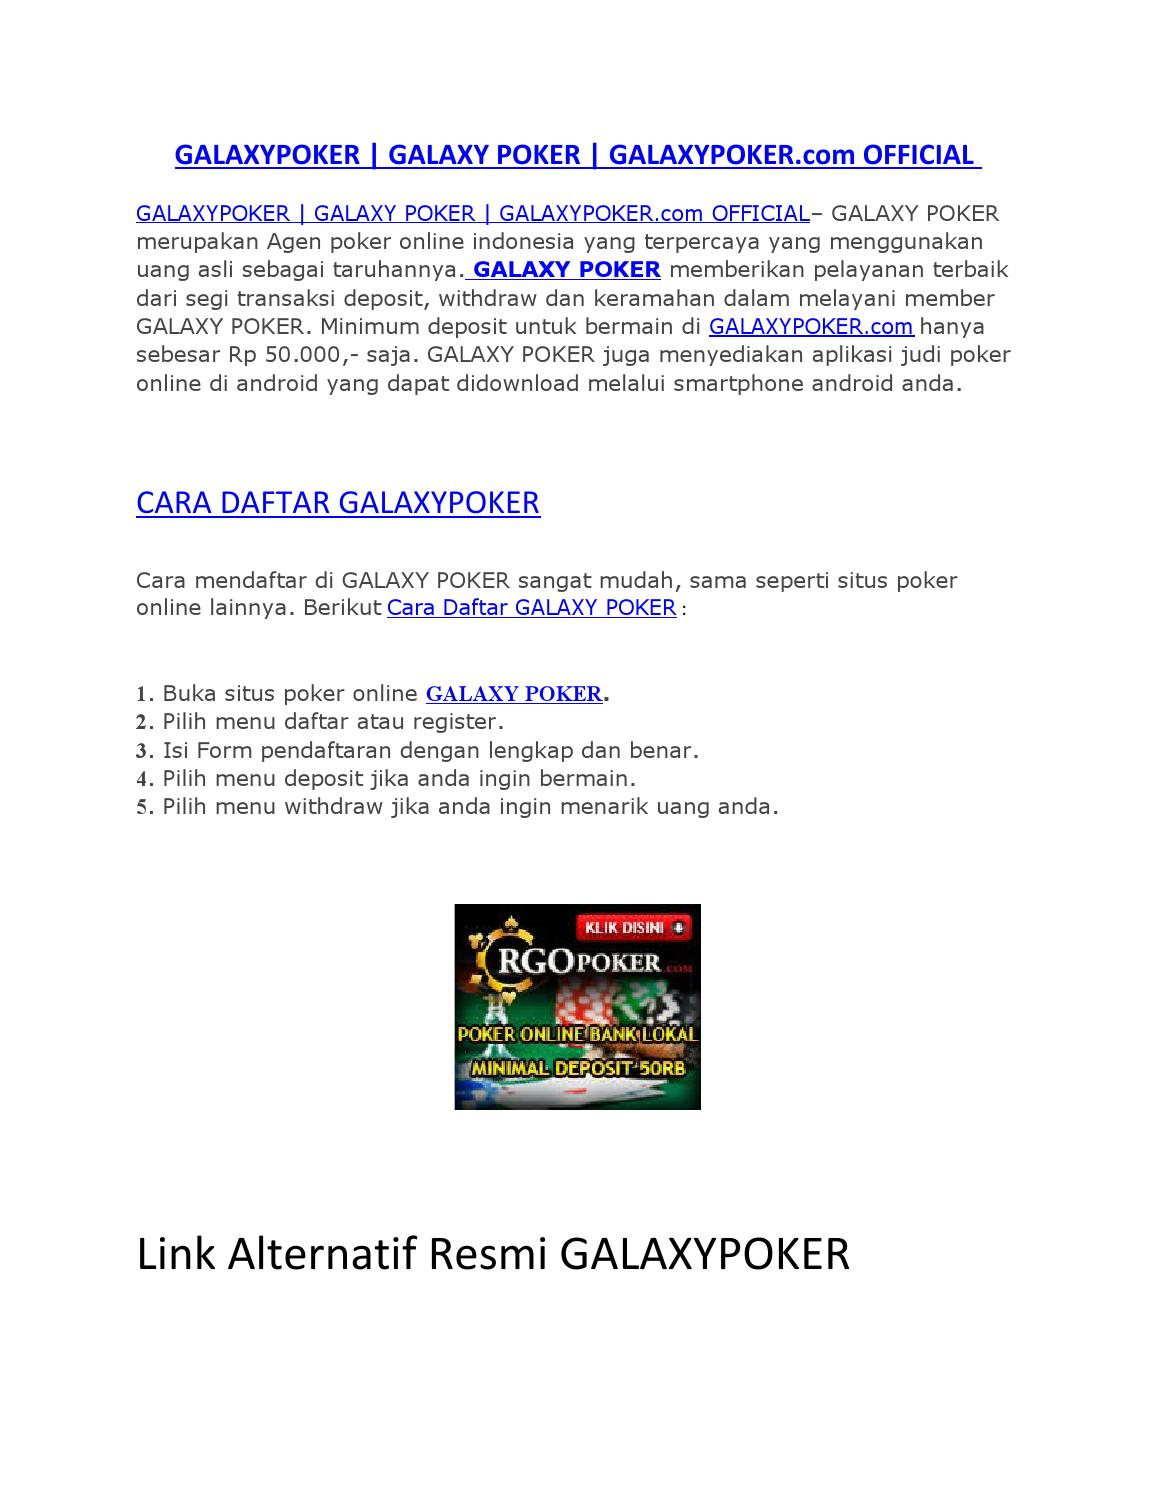 Image Result For Galaxypoker